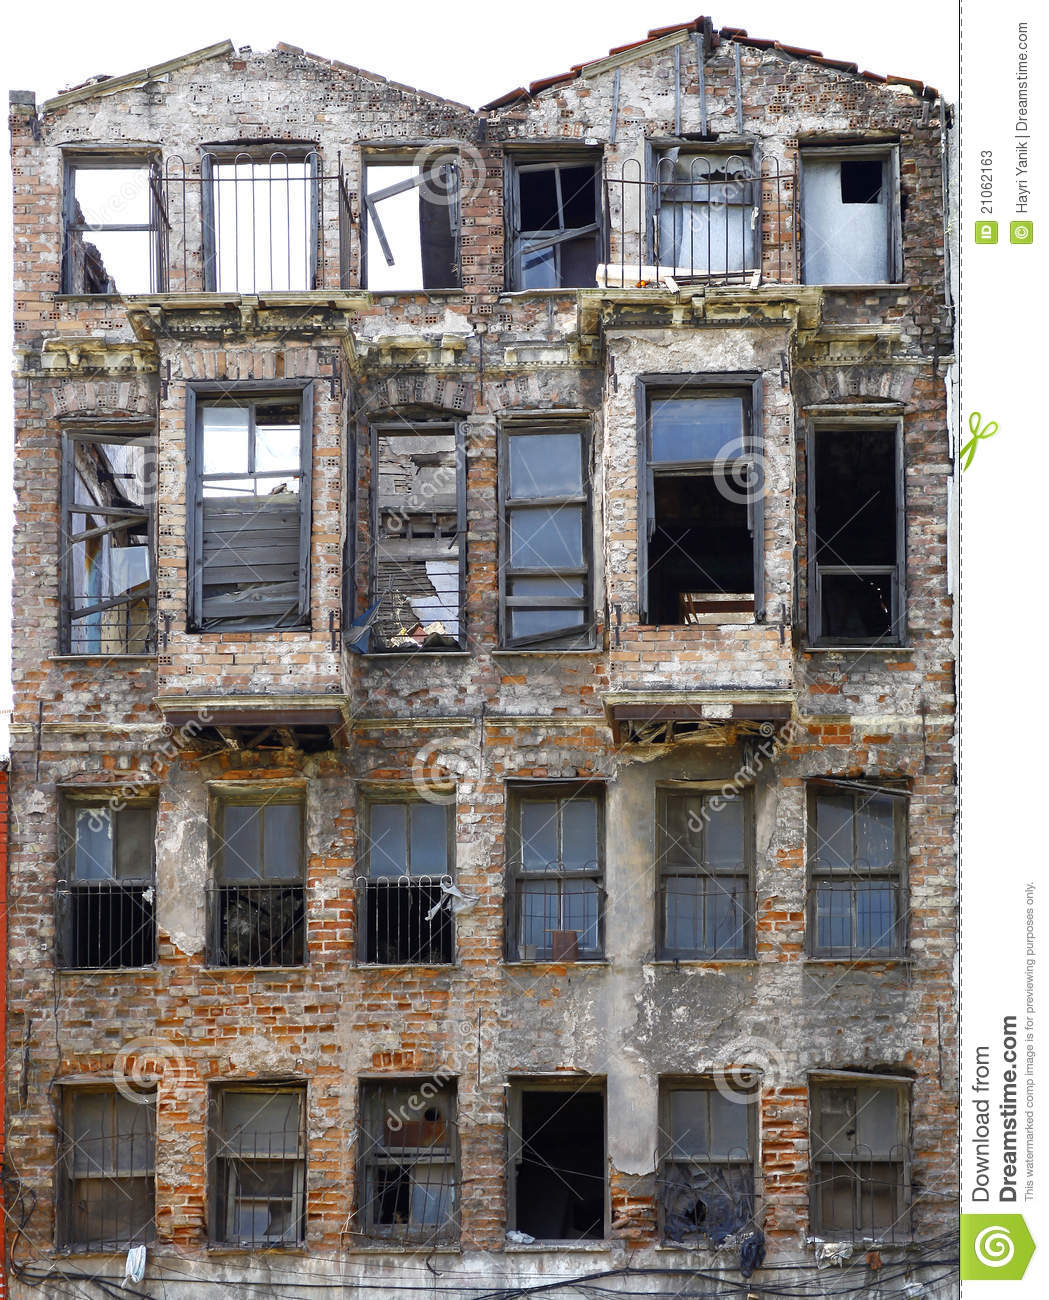 Abandoned Brick Building Stock Image. Image Of Decayed